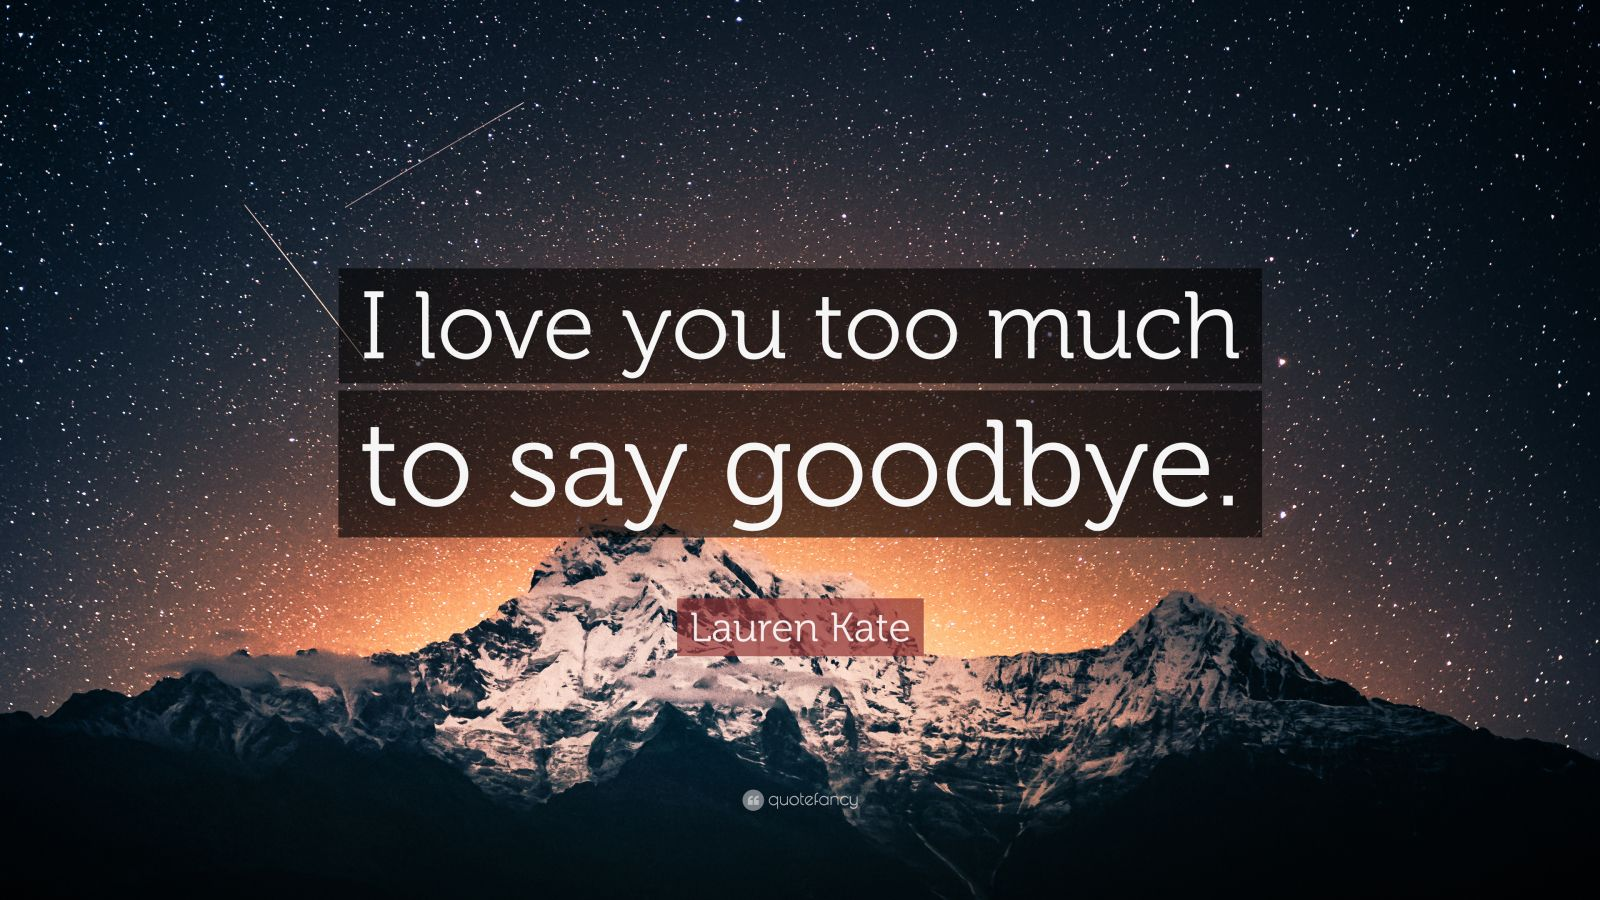 Wallpaper I Love You Too : Lauren Kate Quote: ?I love you too much to say goodbye.? (9 wallpapers) - Quotefancy